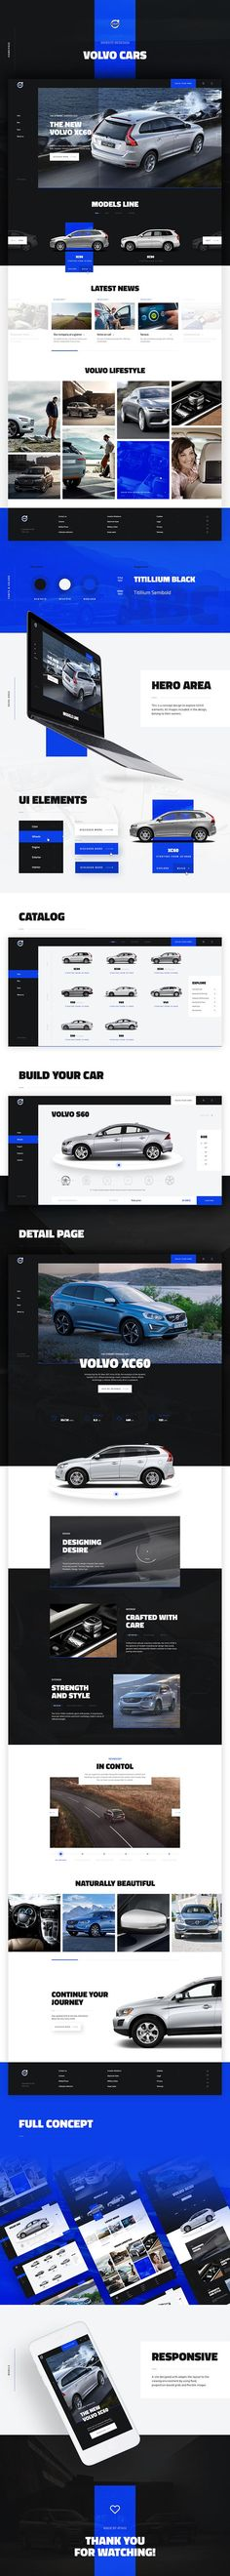 Website redesign concept for Volvo by Atwix.. If you're a user experience professional, listen to The UX Blog Podcast on iTunes.